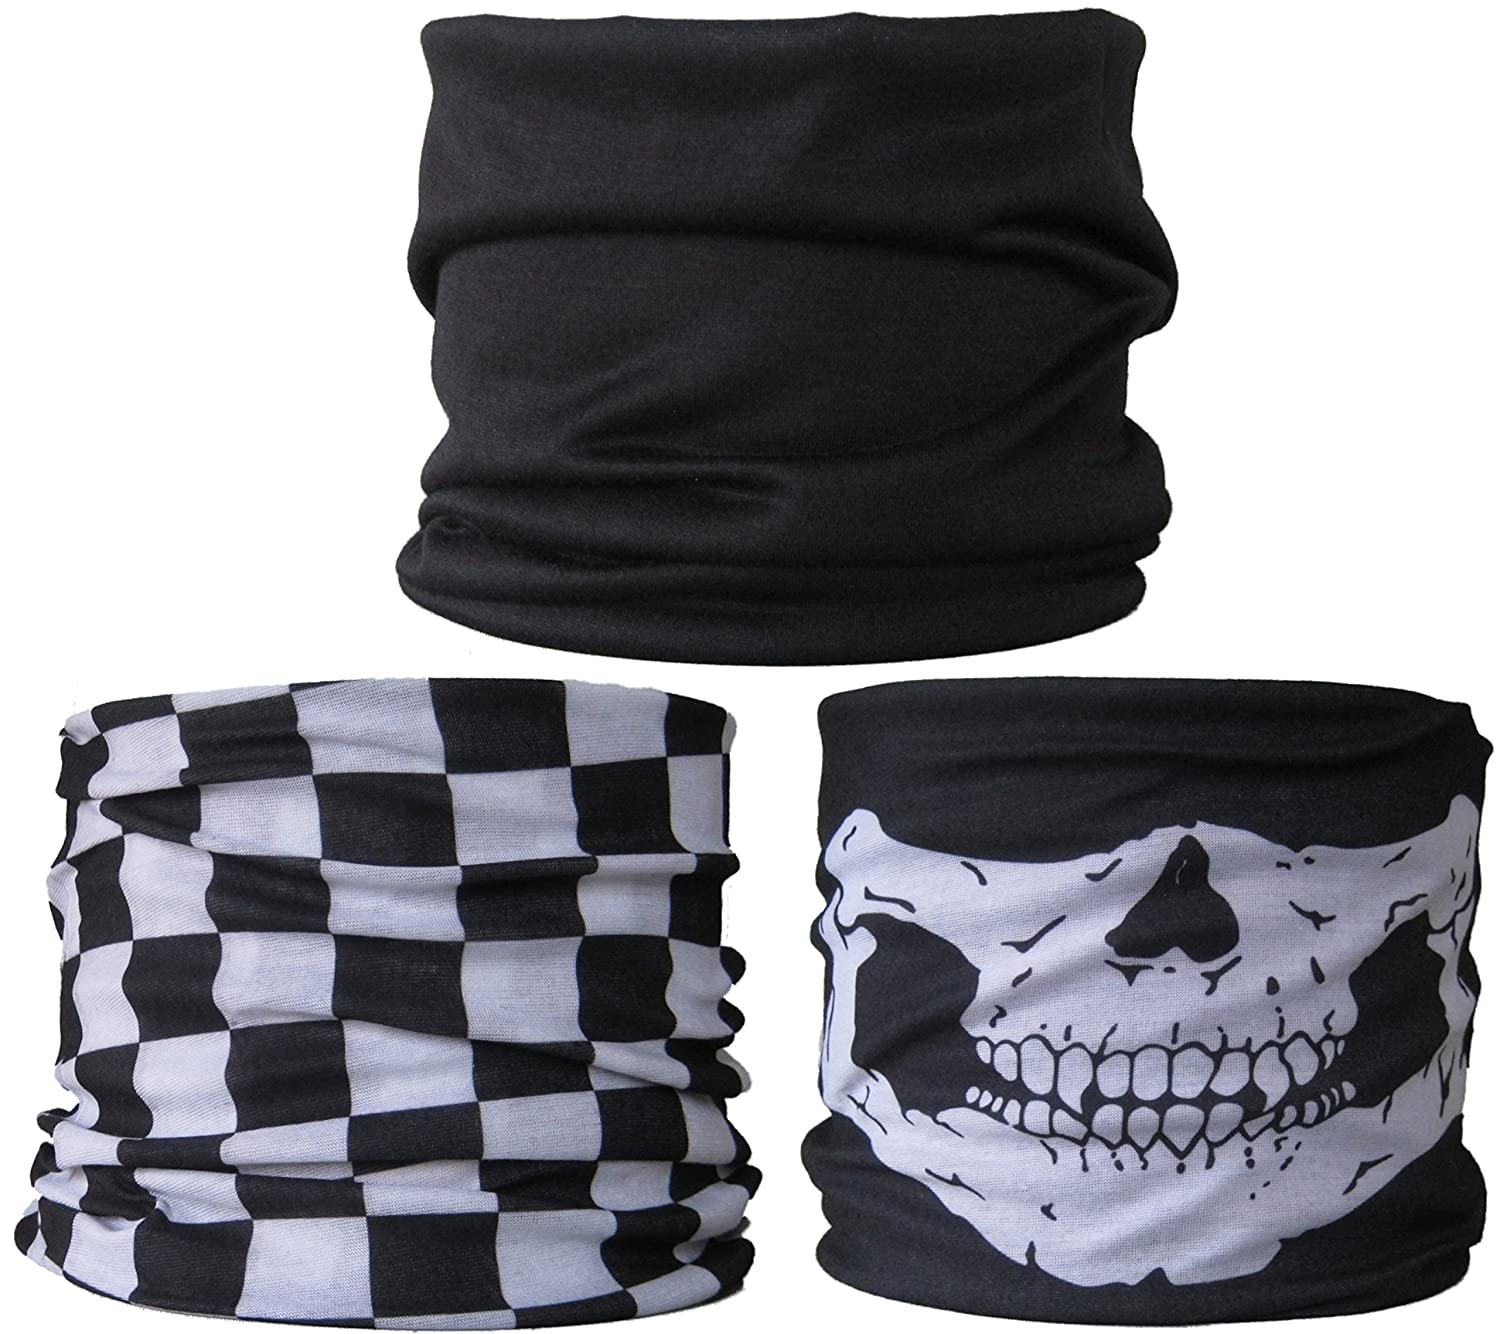 (3 PACK) Multifunctional Headwear... Plain Black / Black & White Check / Skull Jaw